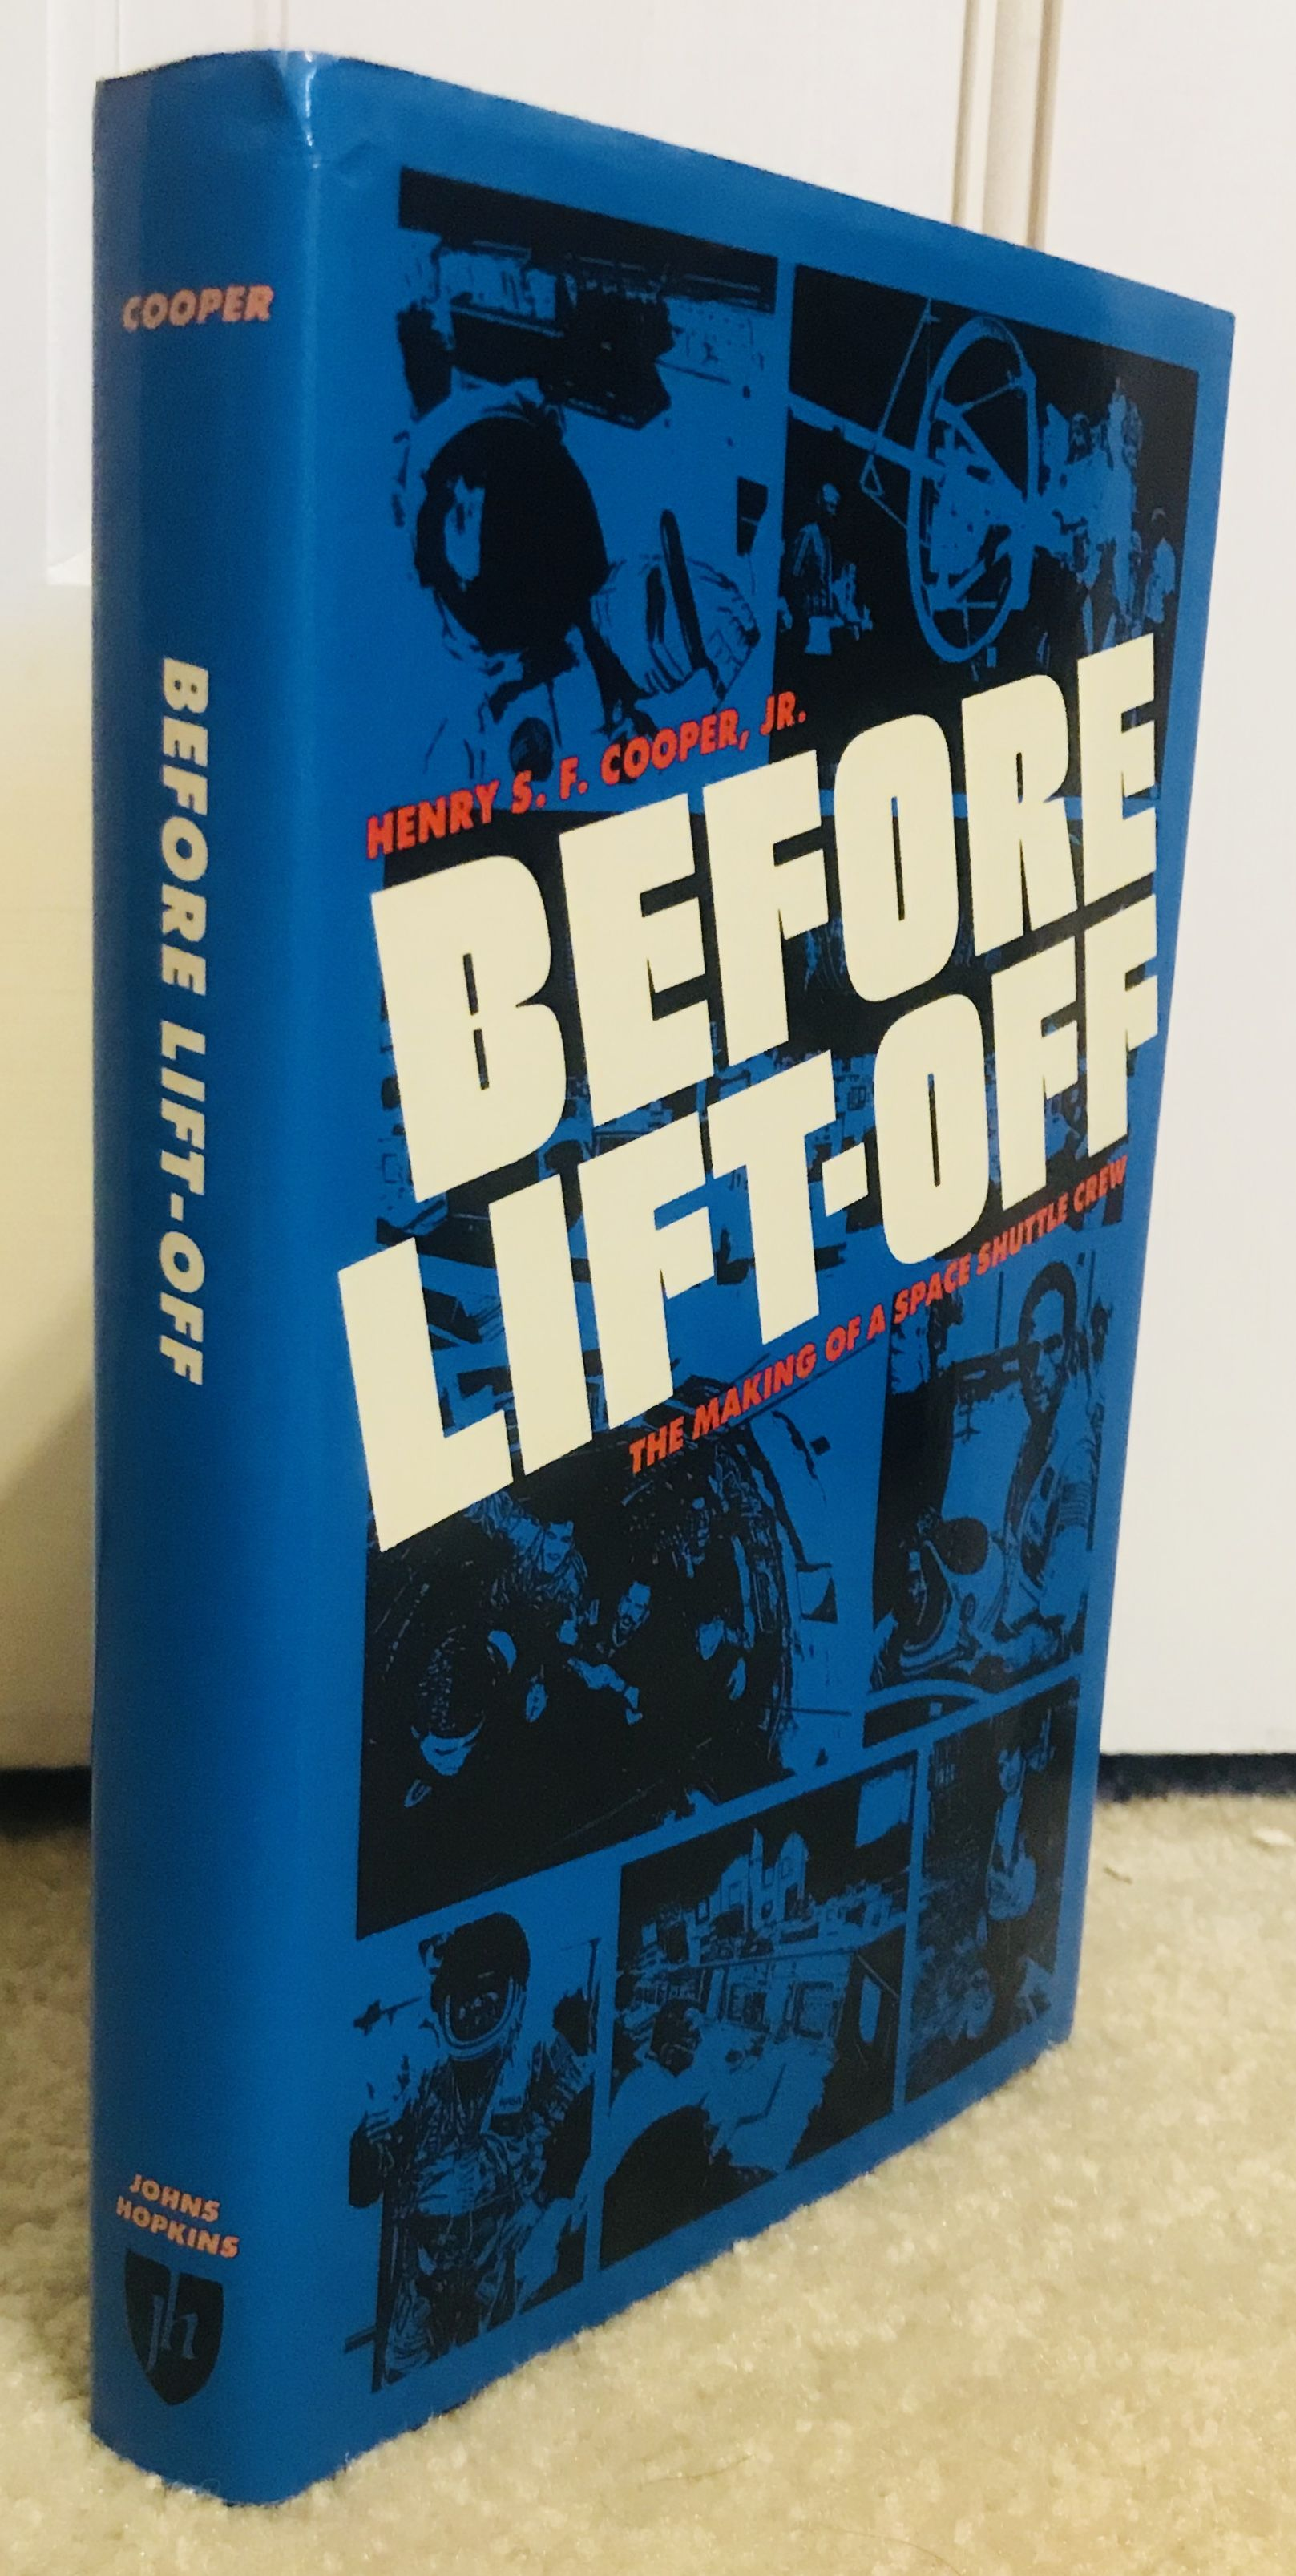 Before Lift-off: The Making of a Space Shuttle Crew (New Series in NASA History), Cooper Jr., Henry S.F.